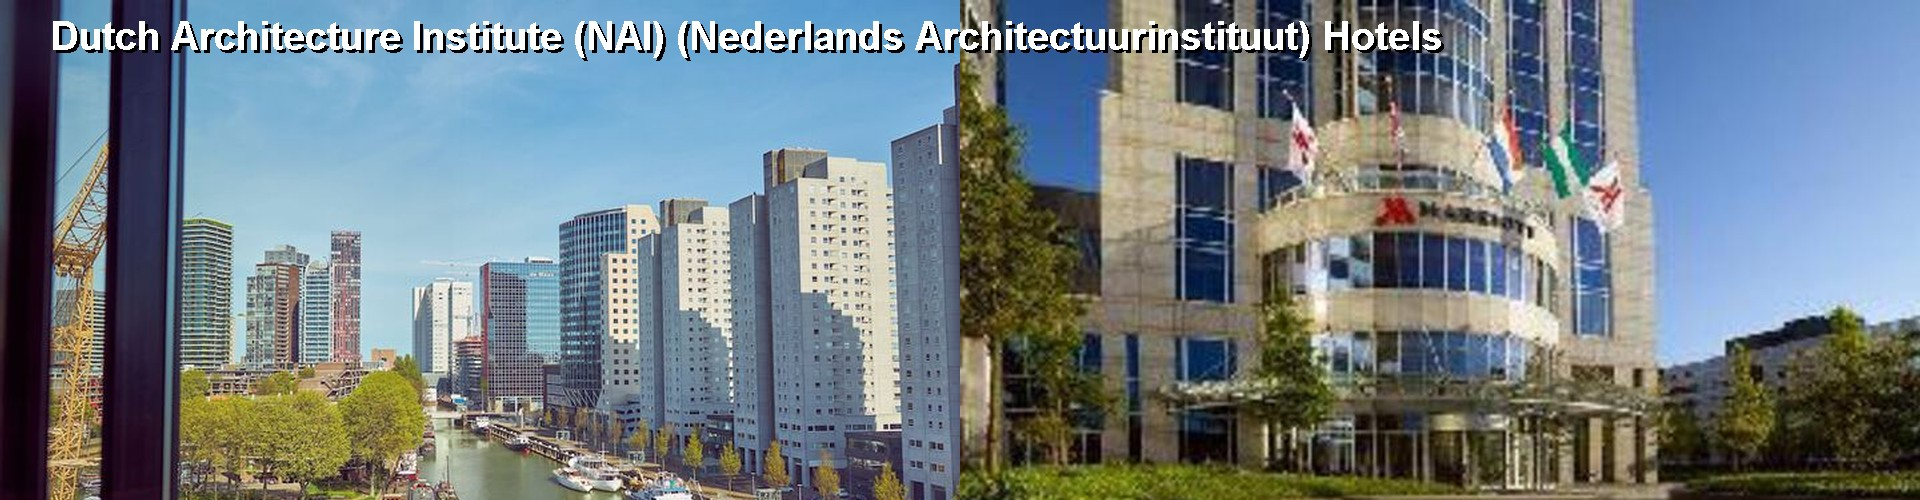 5 Best Hotels near Dutch Architecture Institute (NAI) (Nederlands Architectuurinstituut)